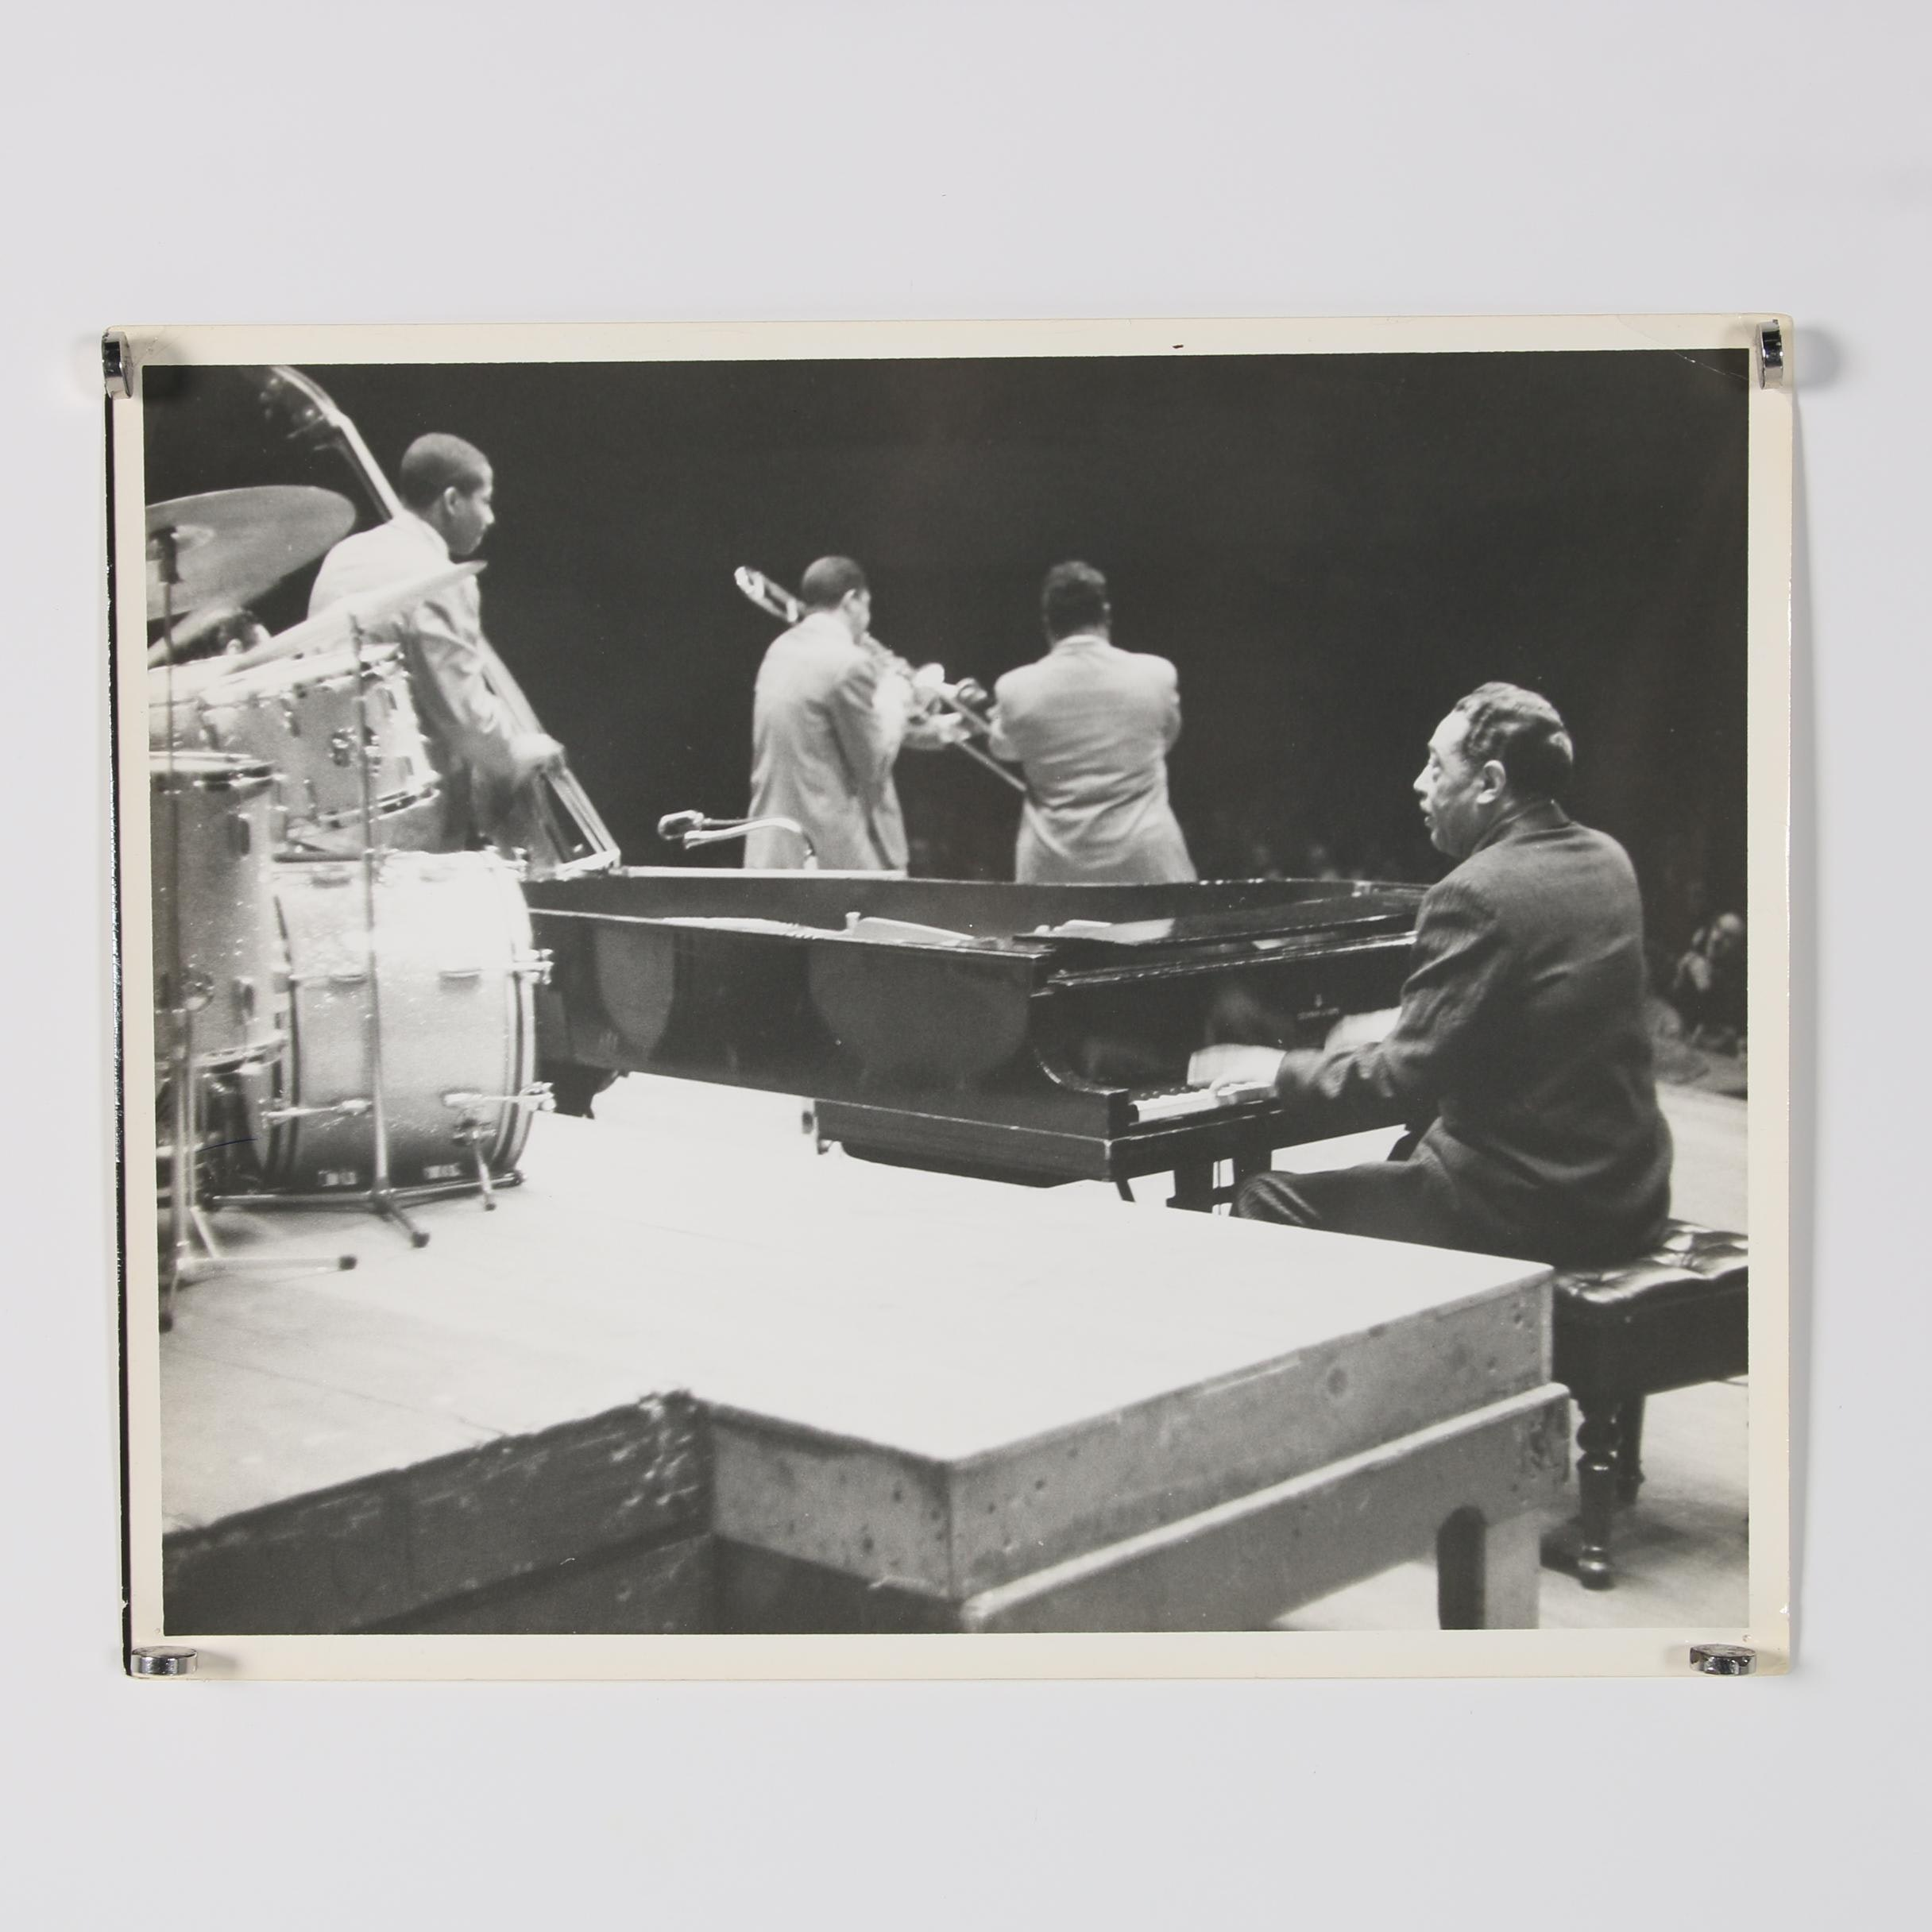 Jack Bradley Gelatin-Silver Print of Duke Ellington and Orchestra